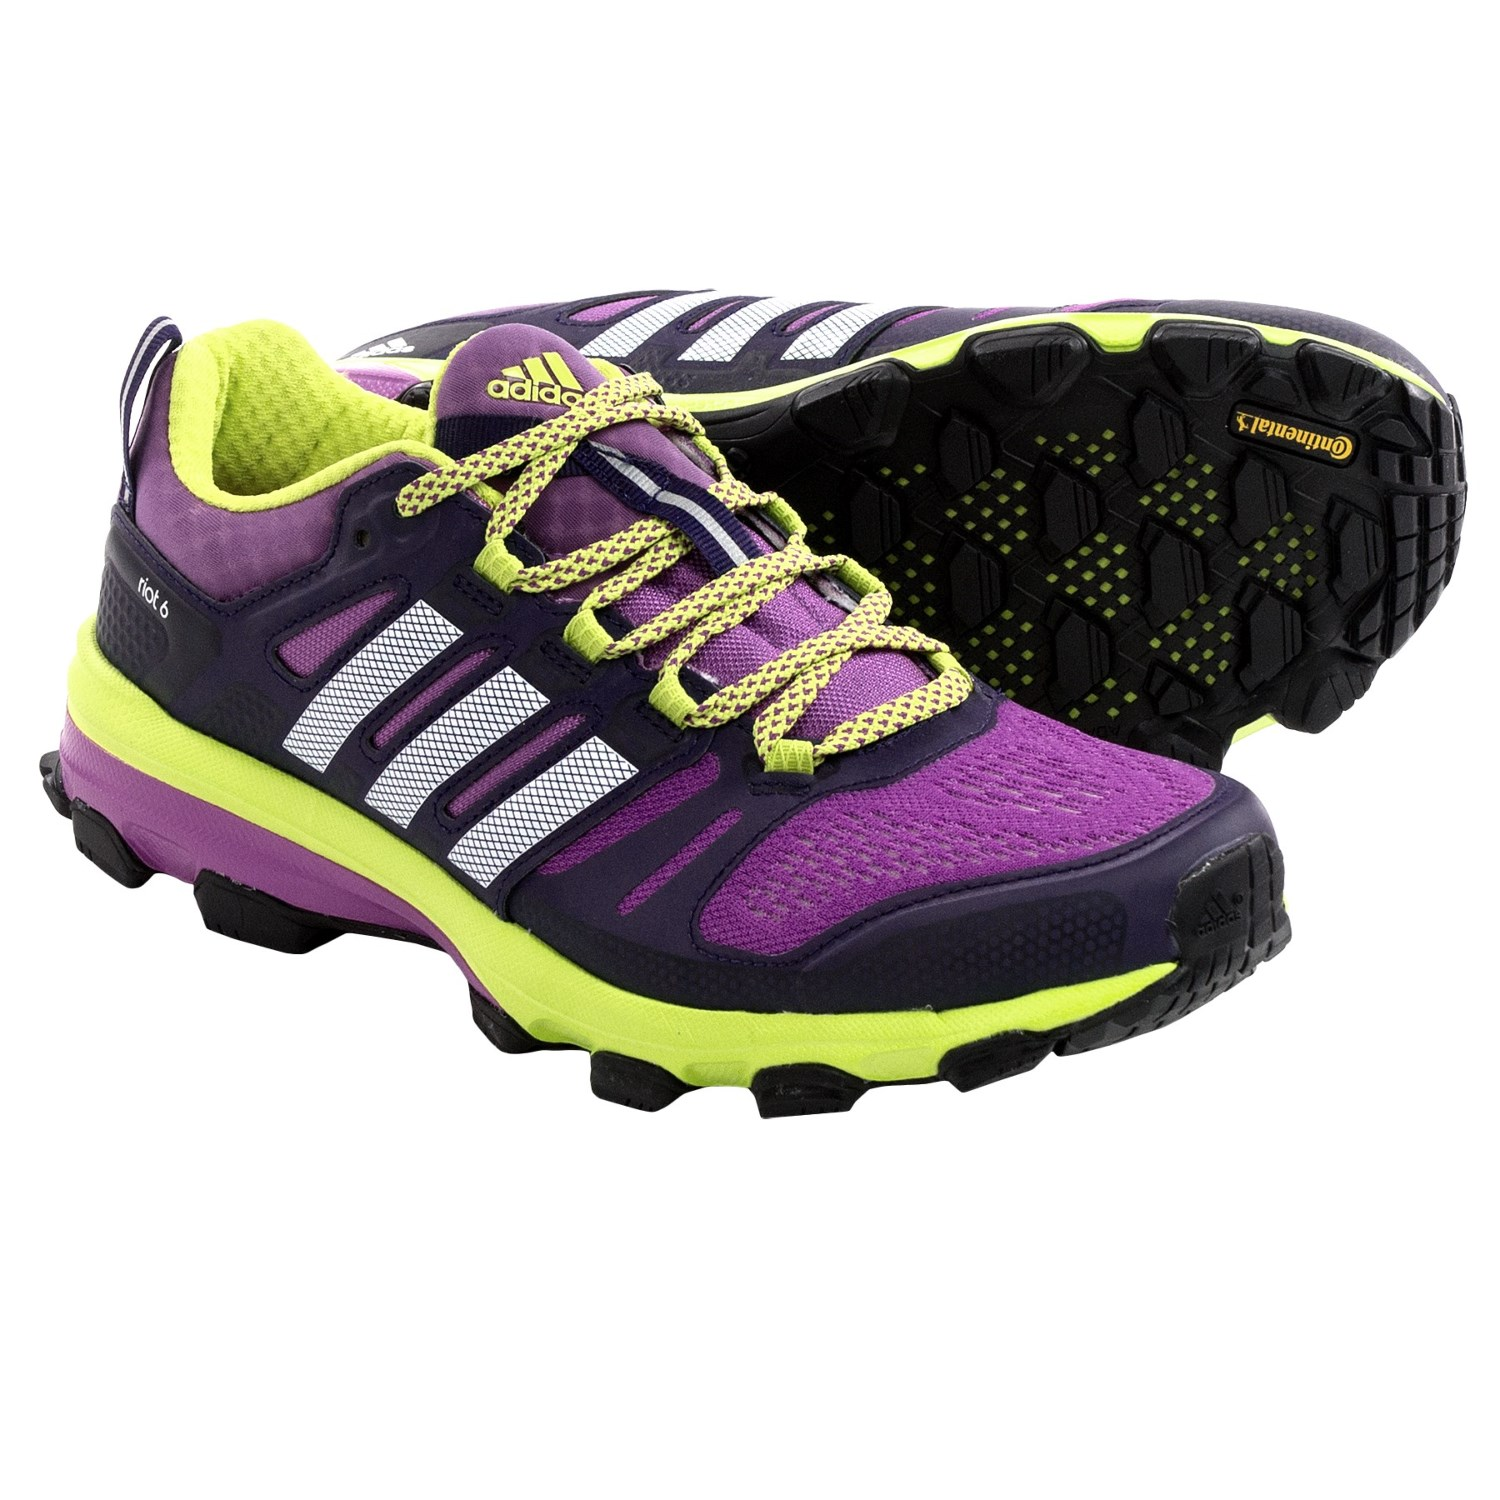 info for d0df9 d5840 Adidas Gsg Running Trainers Cheap Off72 Free Shipping. Adidas Kanadia 7  Purple Trail Shoes